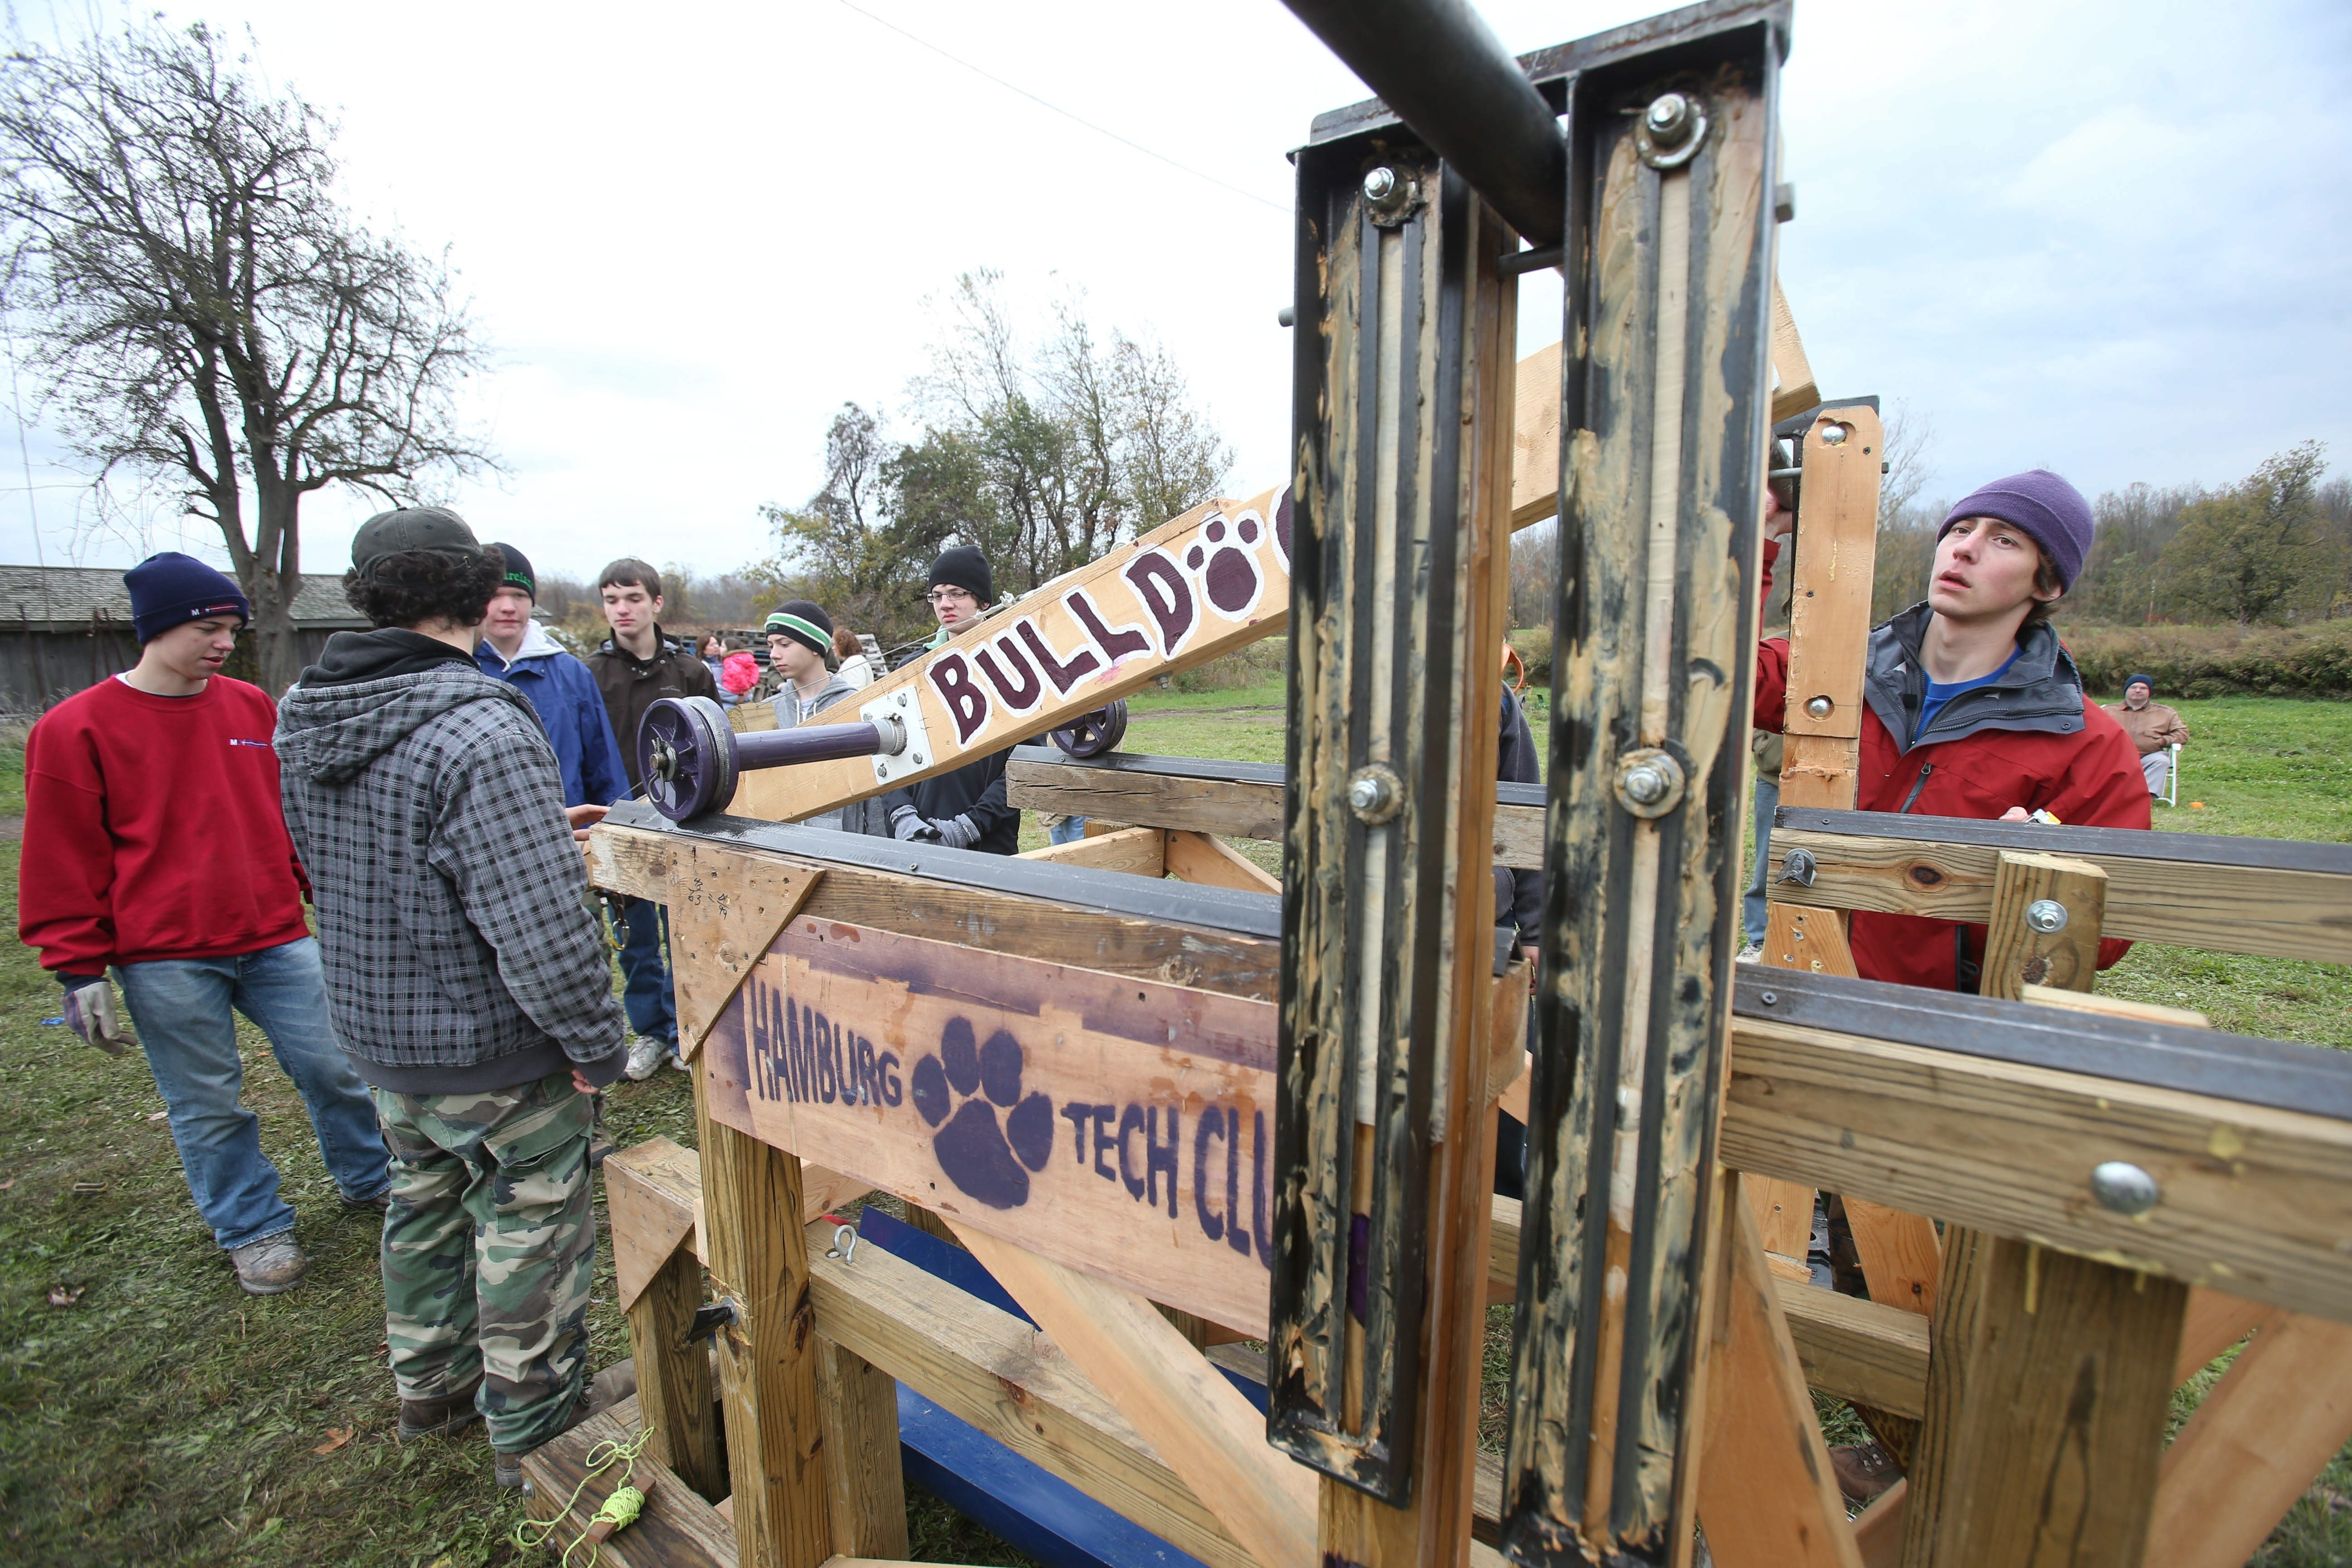 Members of the Hamburg High School tech club, including team captain Kevin Gonser, right, assemble their trebuchet for the pumpkin-flinging contest at the Great Pumpkin Farm in Clarence on Sunday. The team won the target competition.